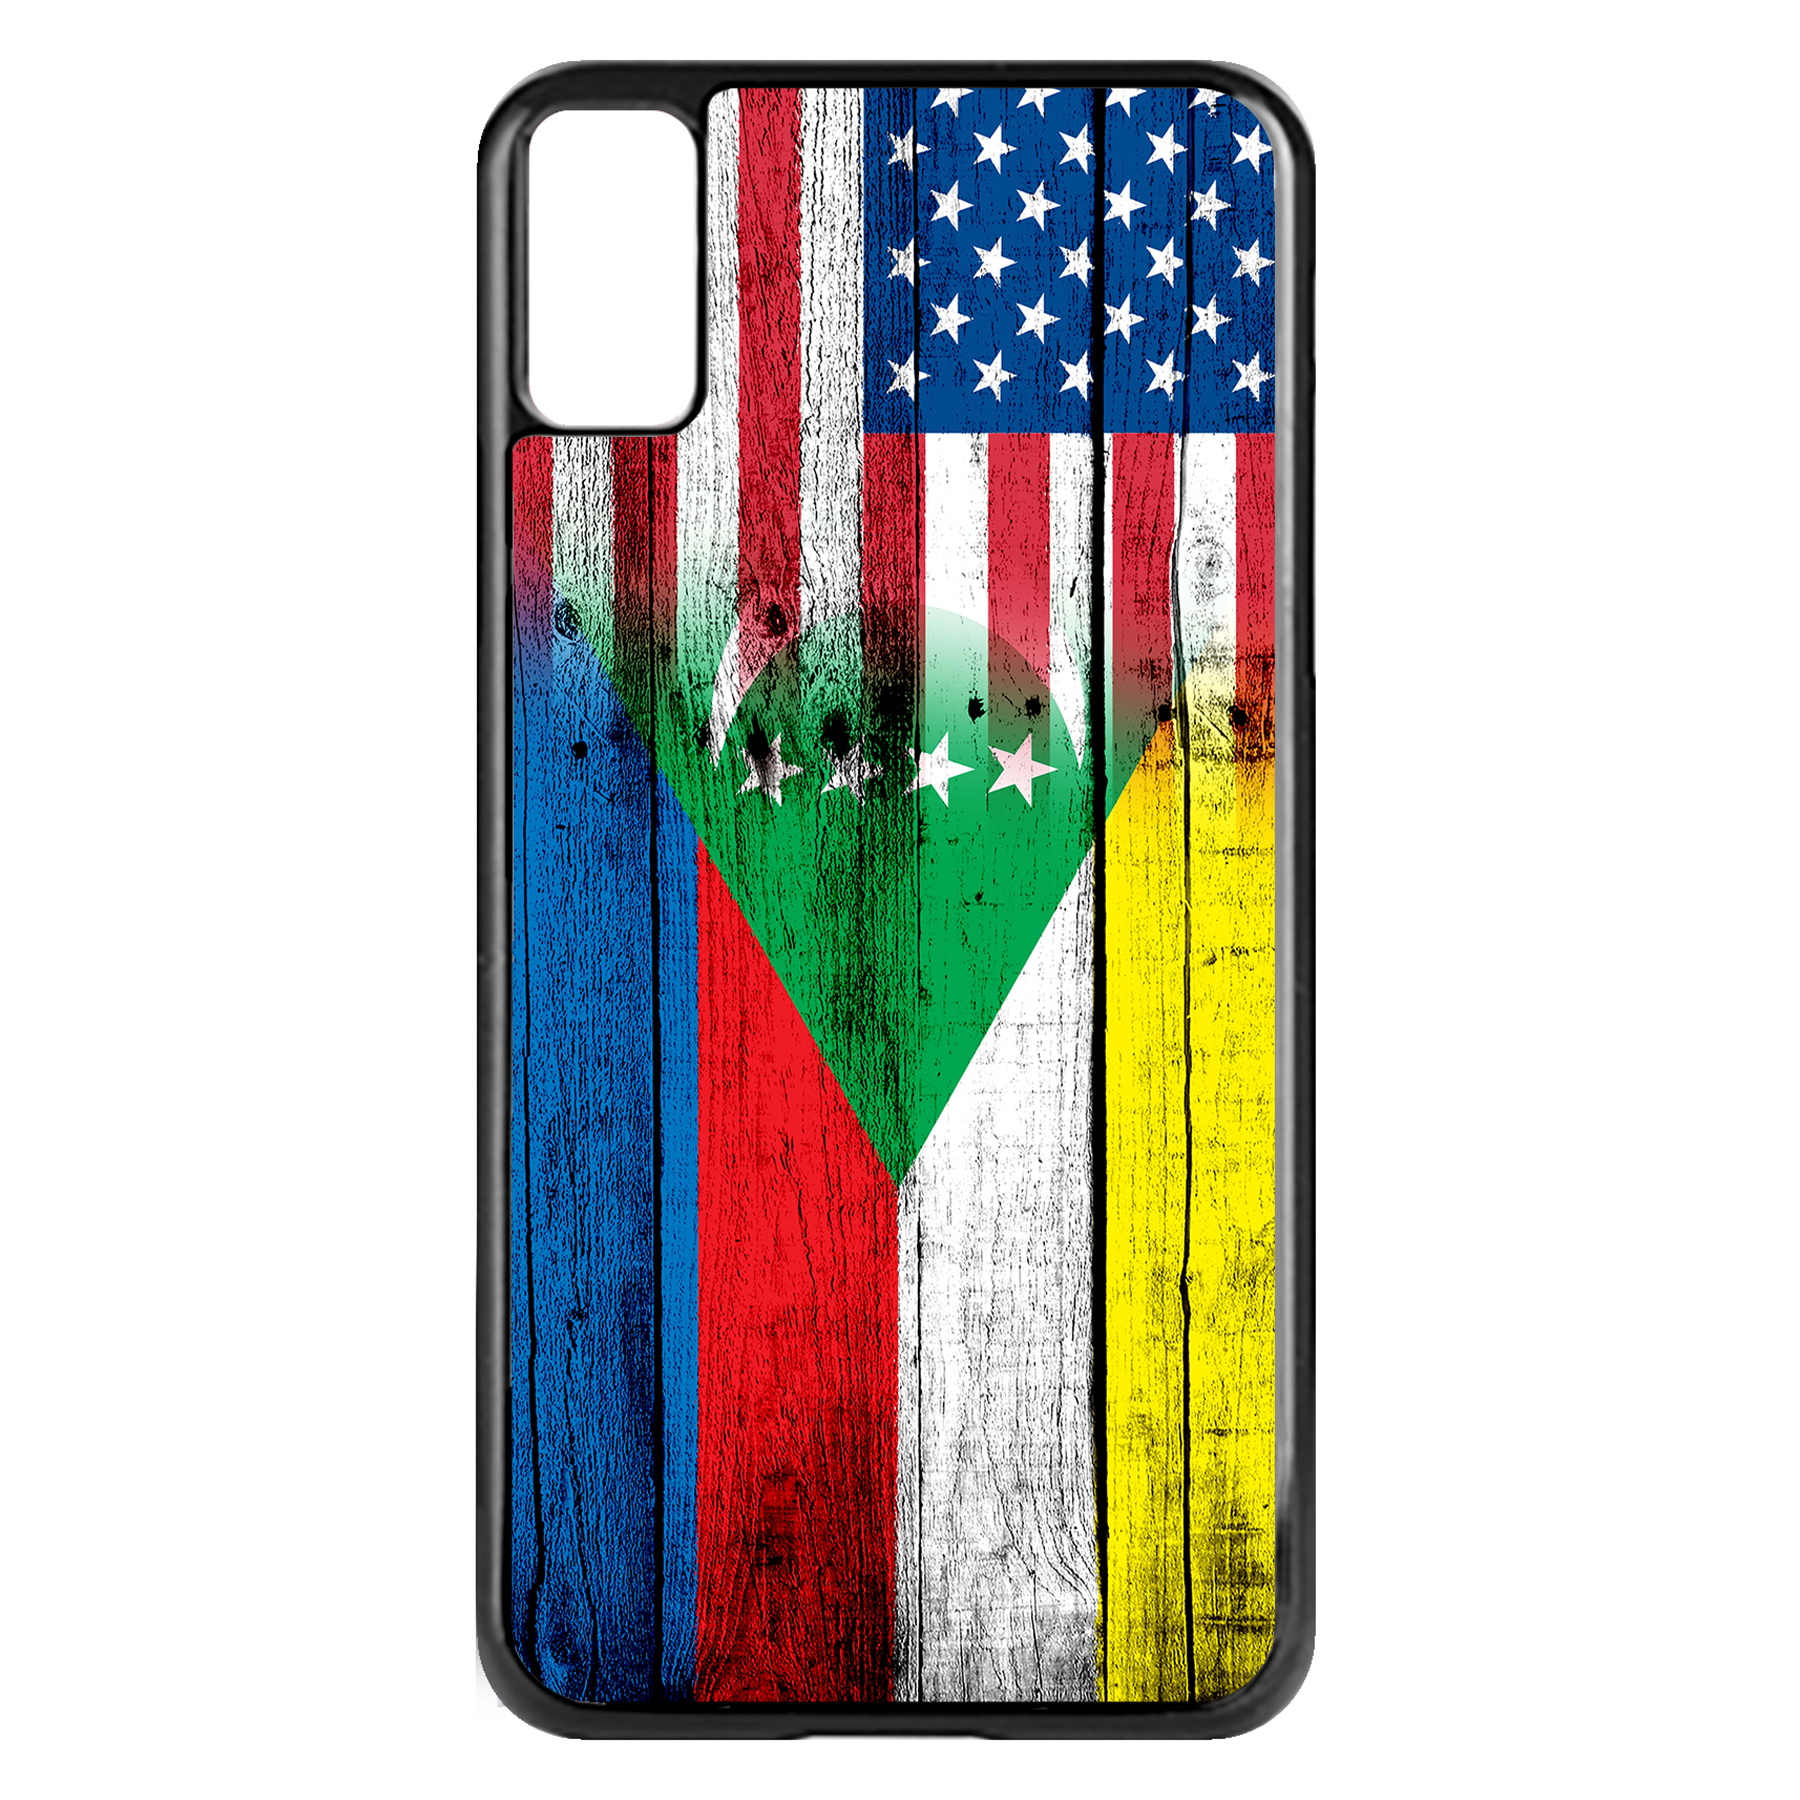 Apple-iPhone-Case-with-Flag-of-Comoros-Comorian-Many-Design-Options thumbnail 16